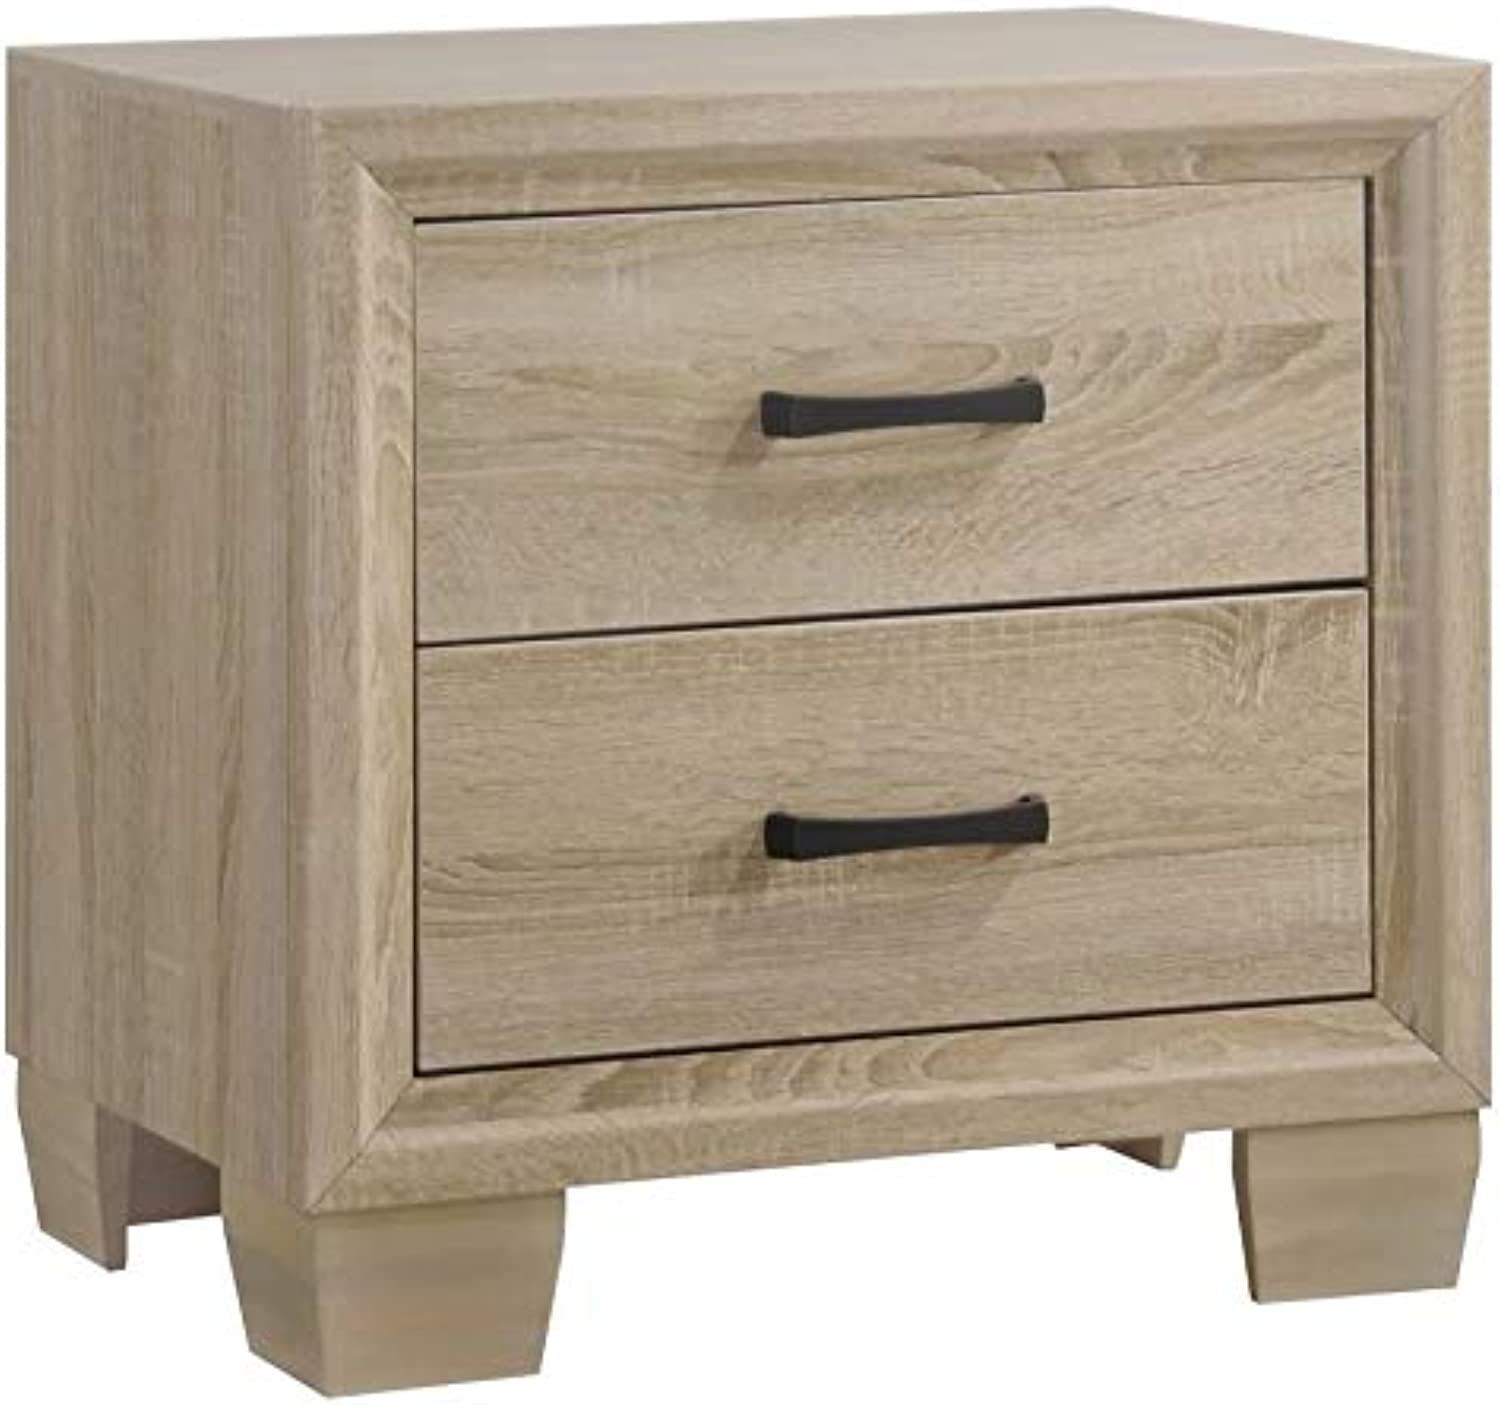 Benzara Wooden Nightstand with 2 Drawers, Brown